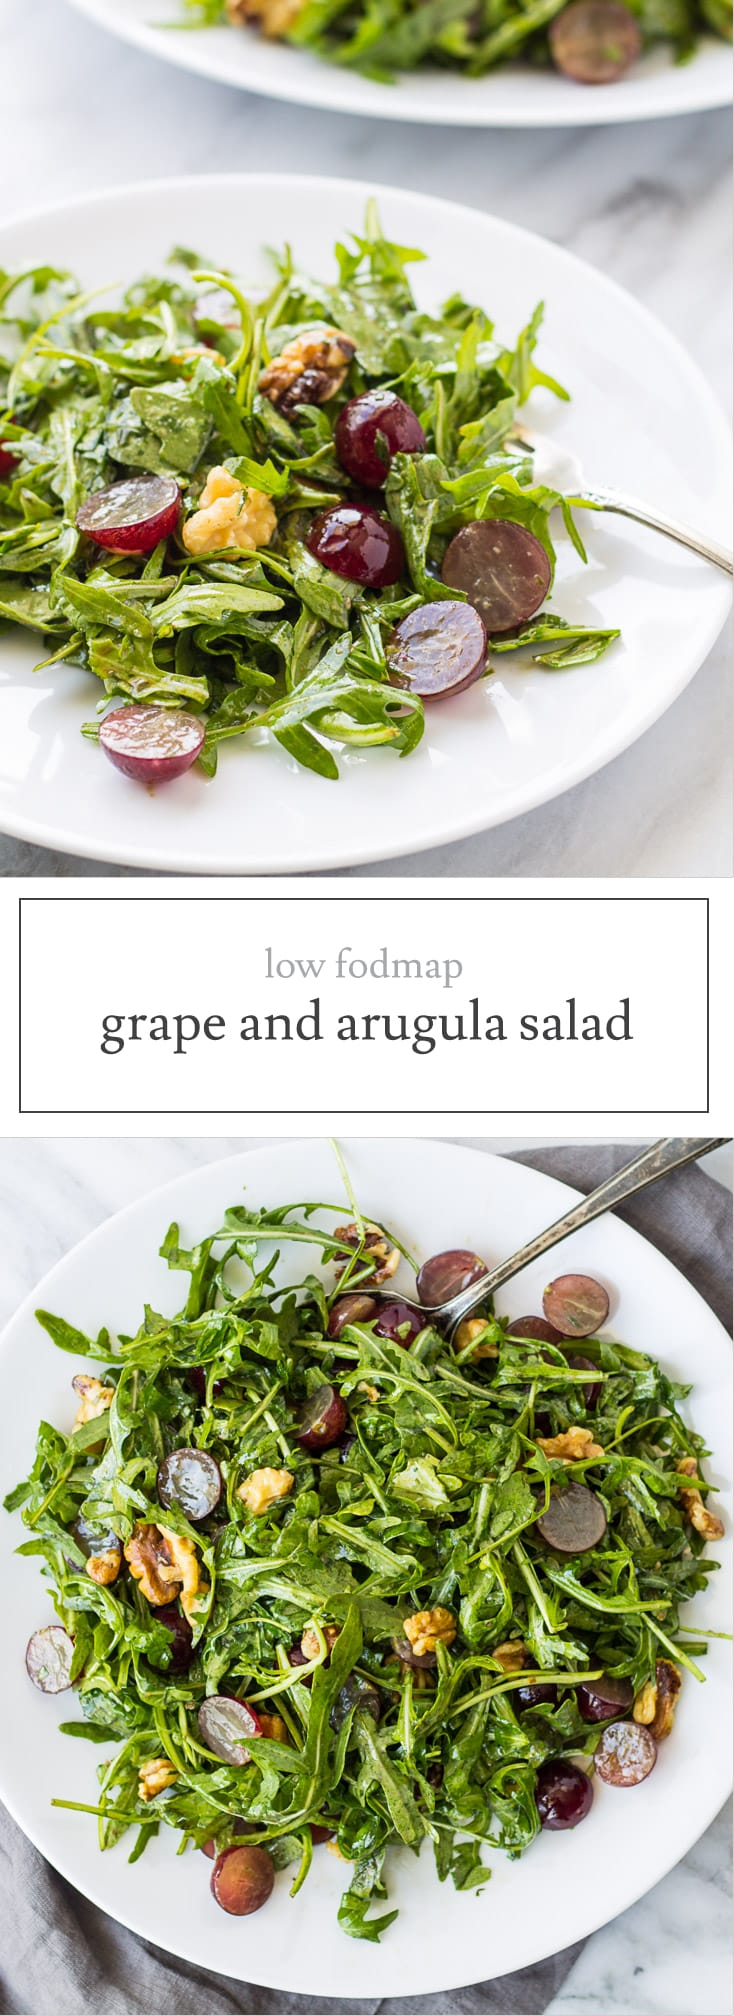 Low Fodmap Arugula Salad with Grapes is filled with peppery arugula, succulent red grapes, crunchy walnuts and a balsamic Dijon vinaigrette. An easy low fodmap recipe!